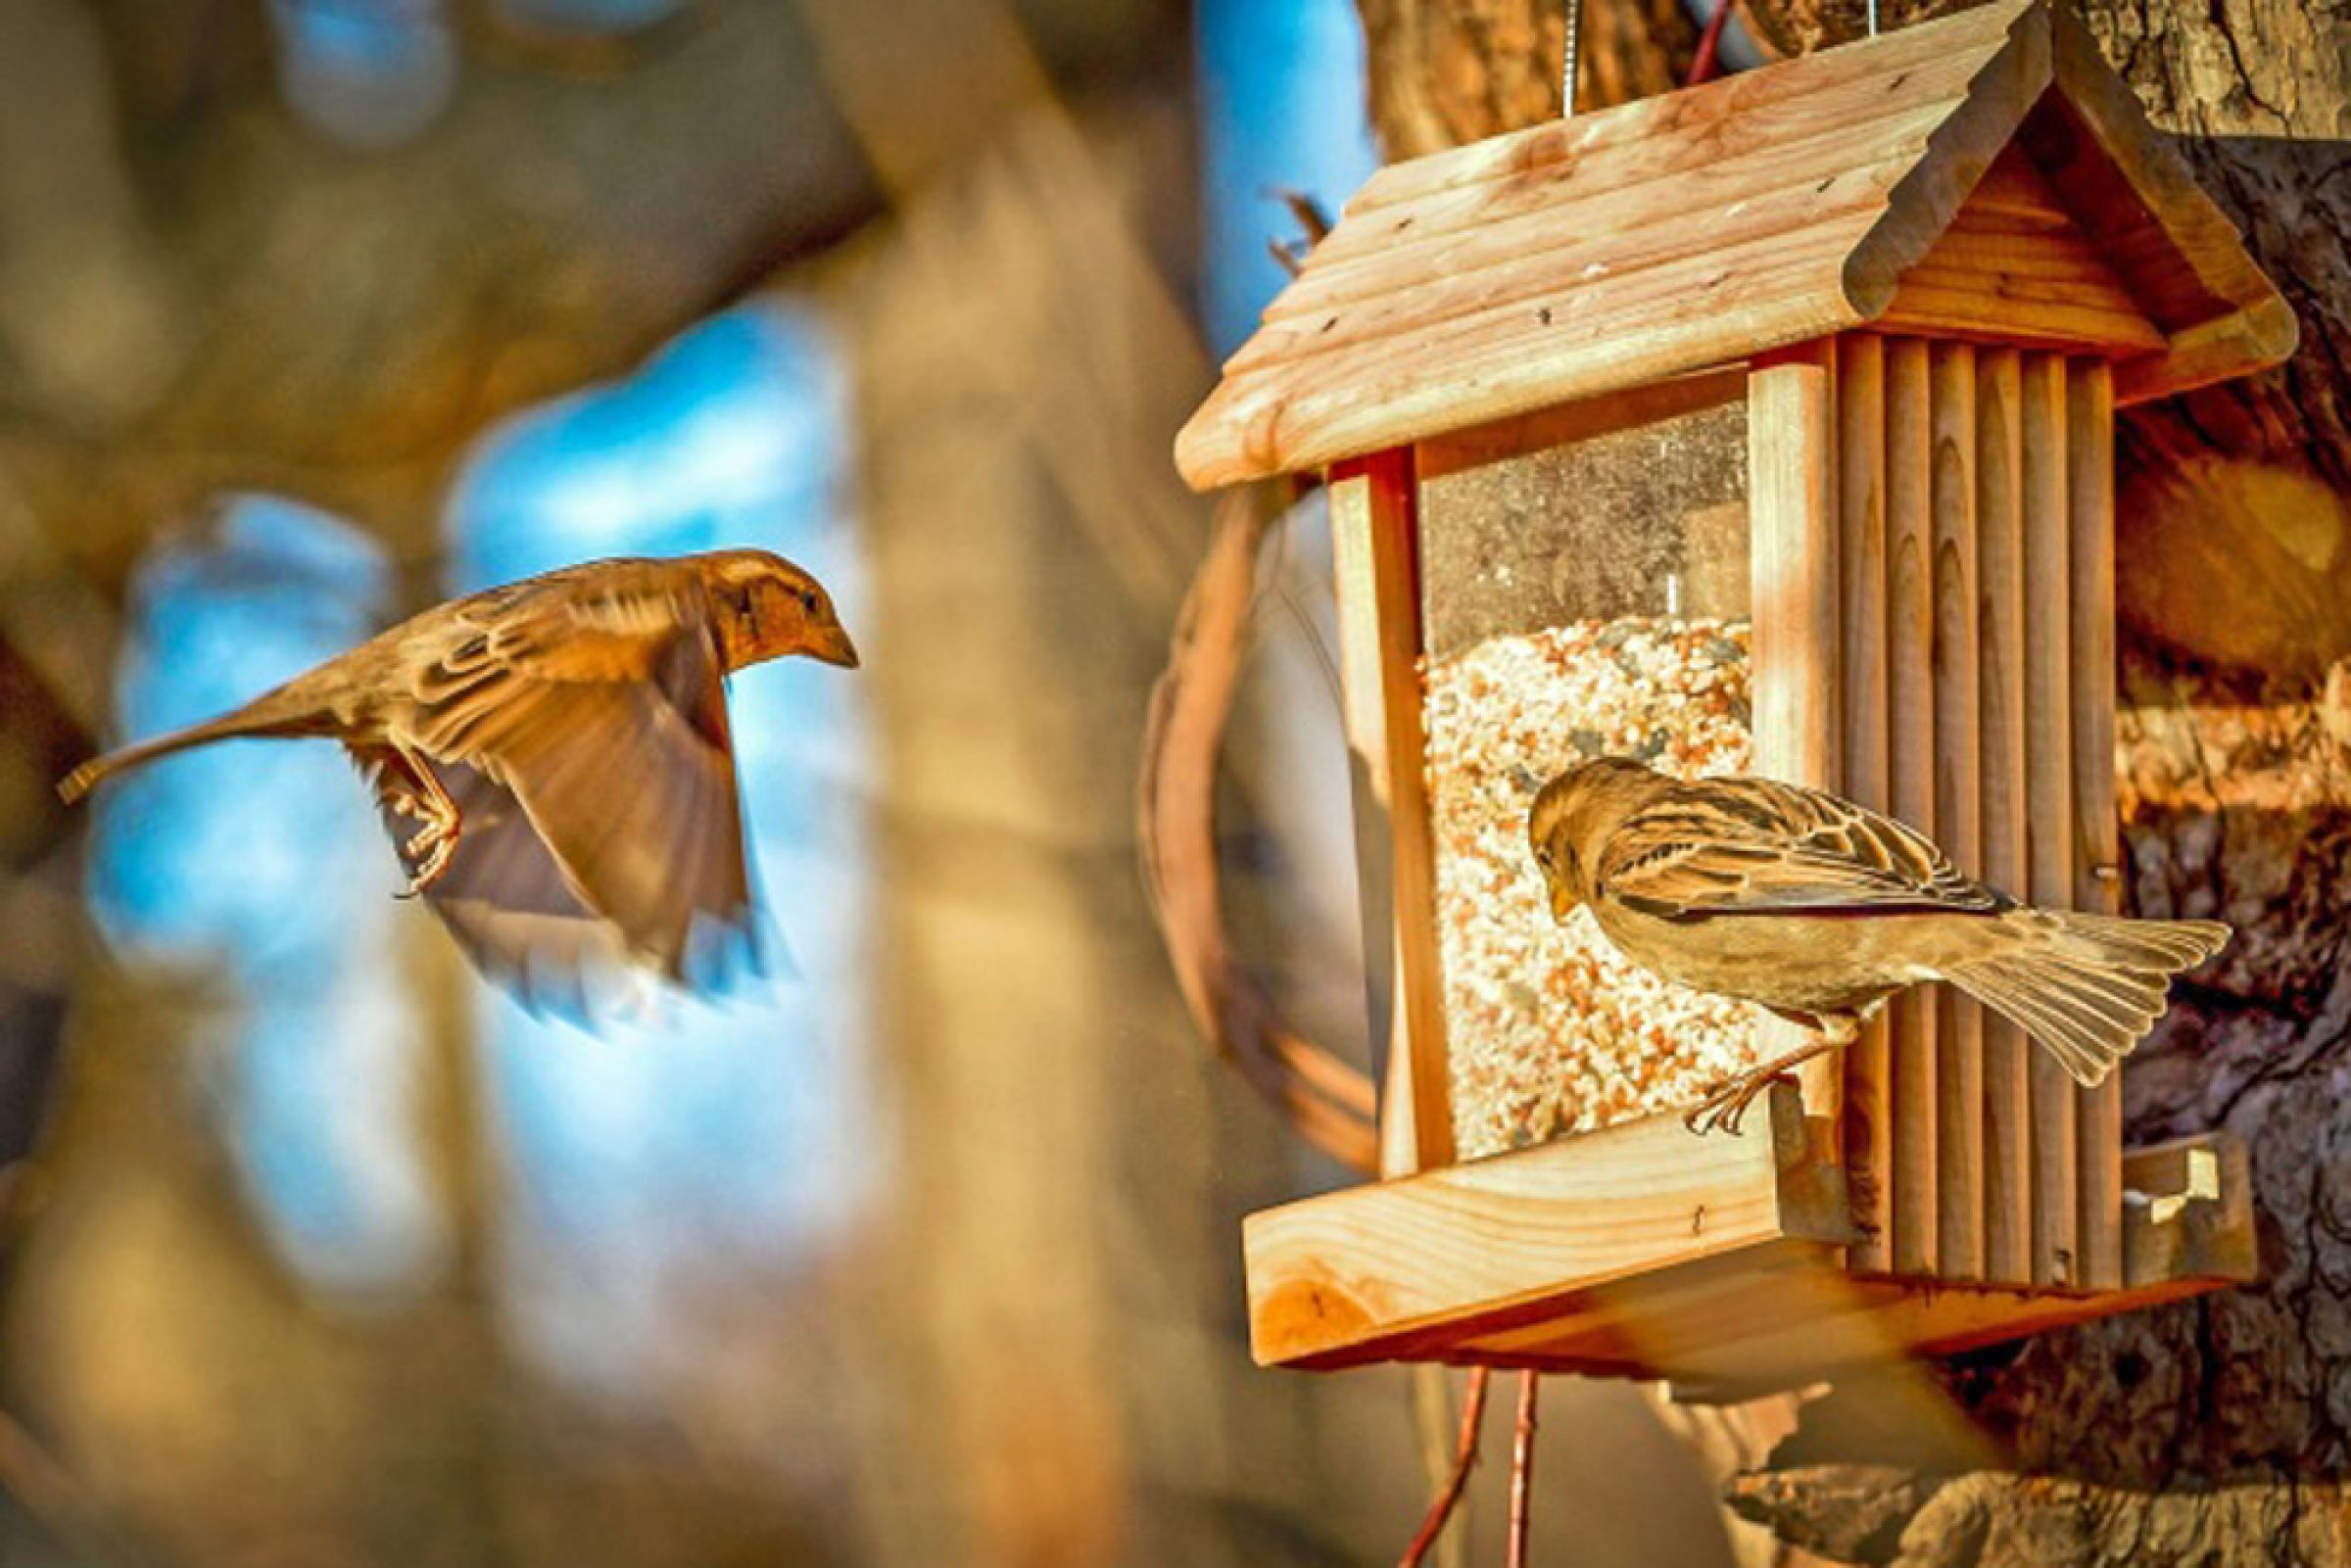 Study Says Birds Won't Become Dependent on People Feeding Them